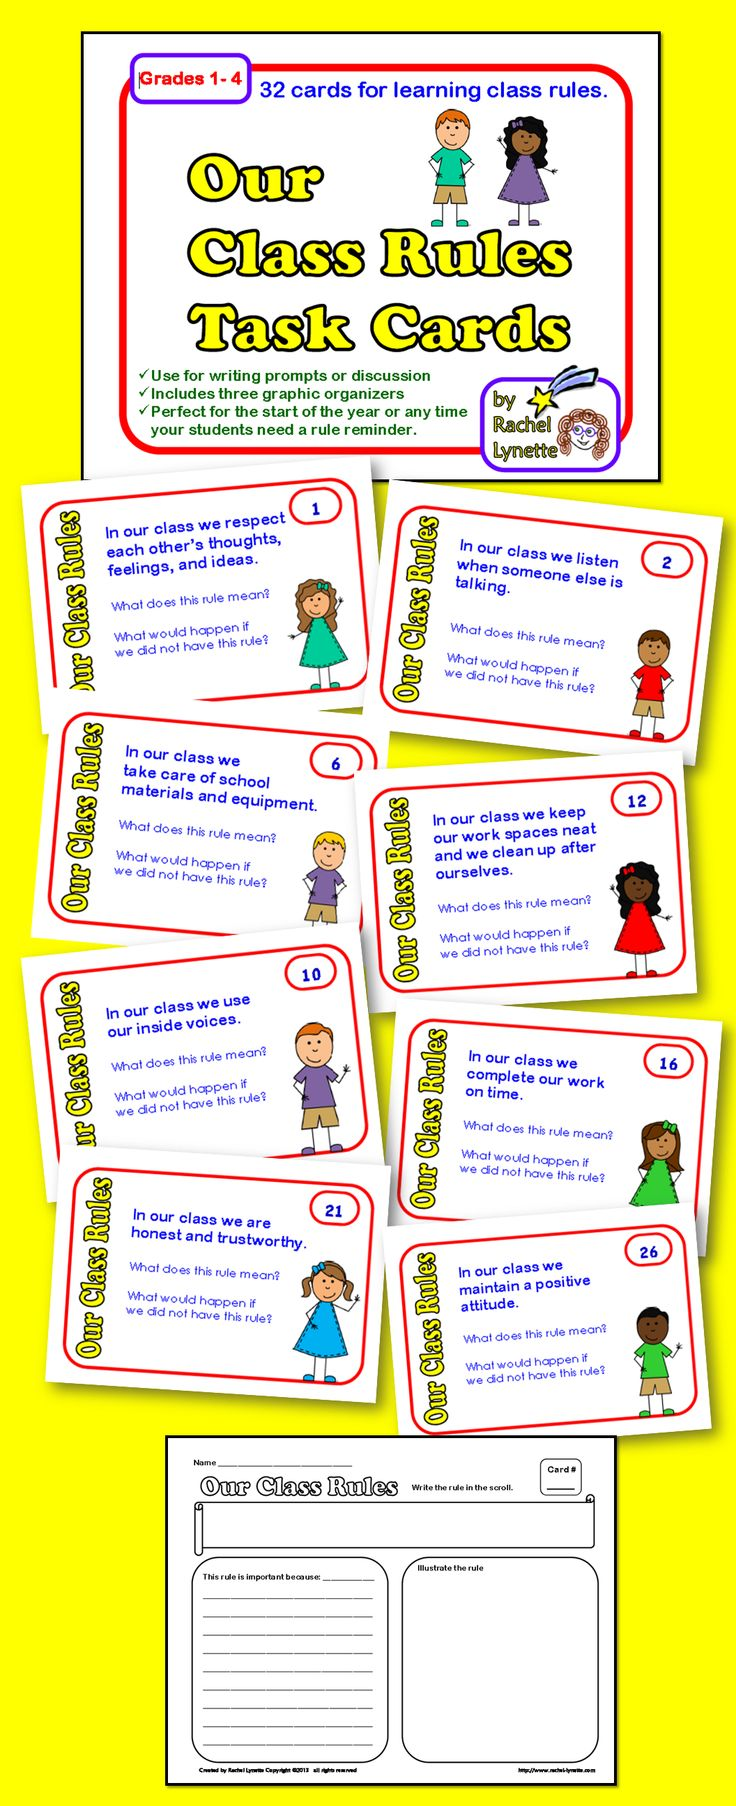 Our Class Rules Task Cards - a fun way to learn class rules!